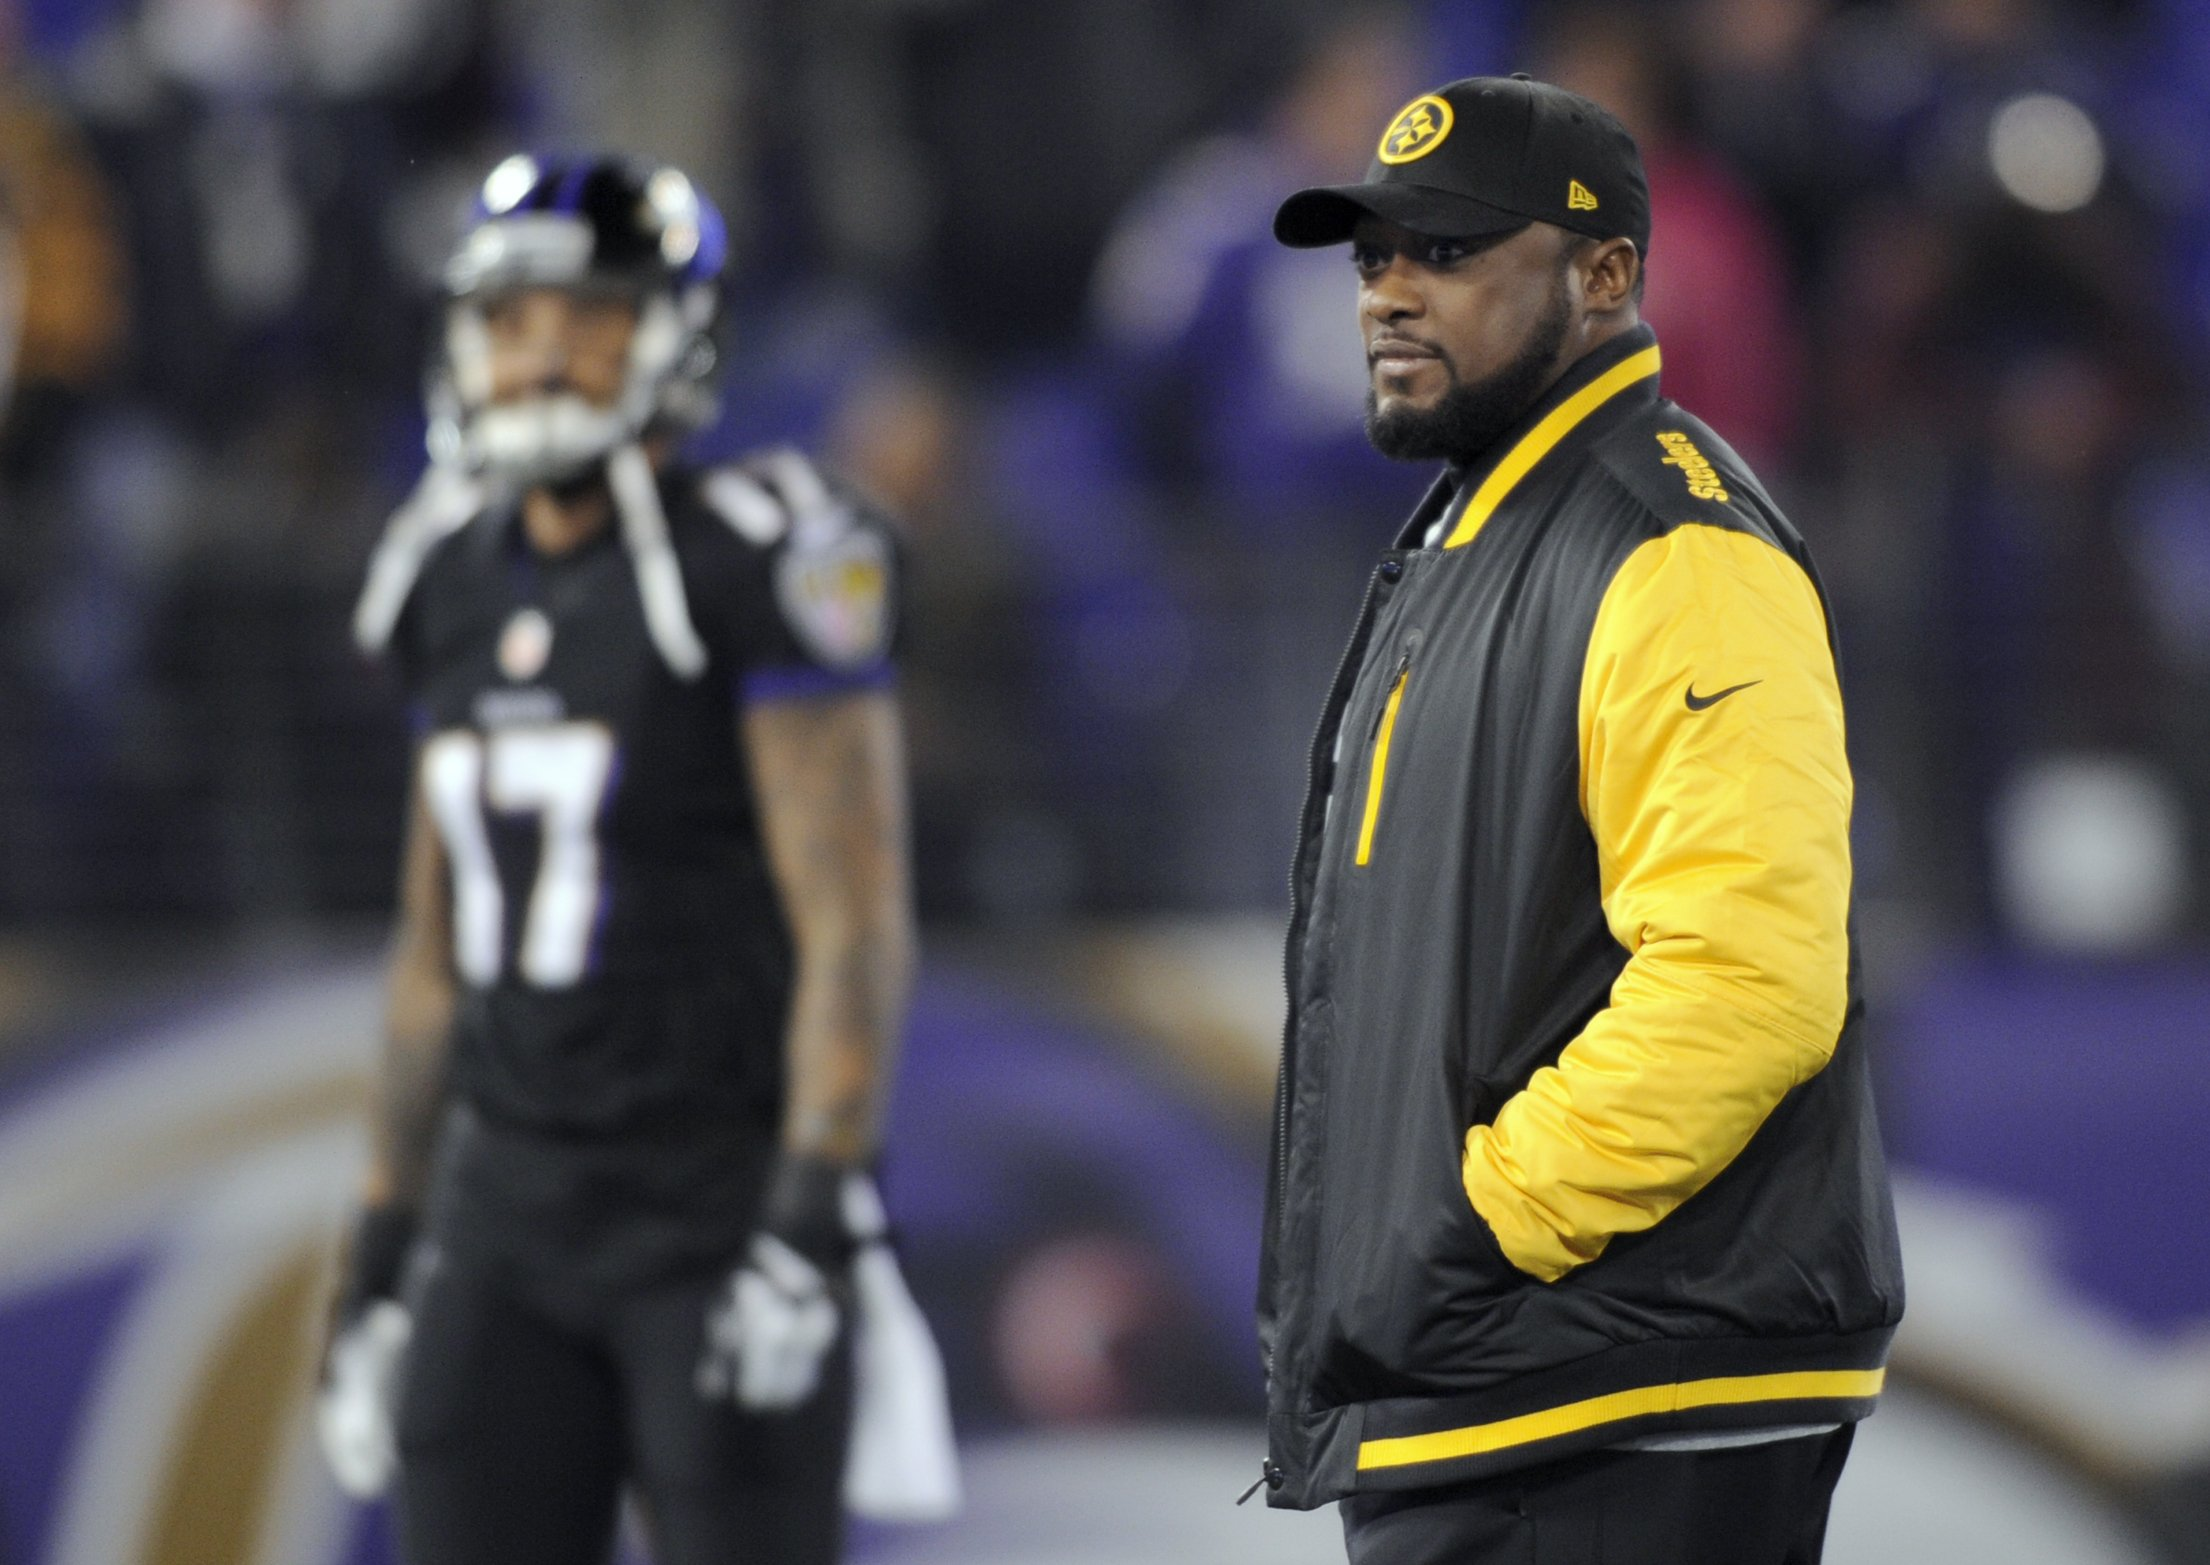 Steelers notebook: Tomlin plays role of his own on kick return